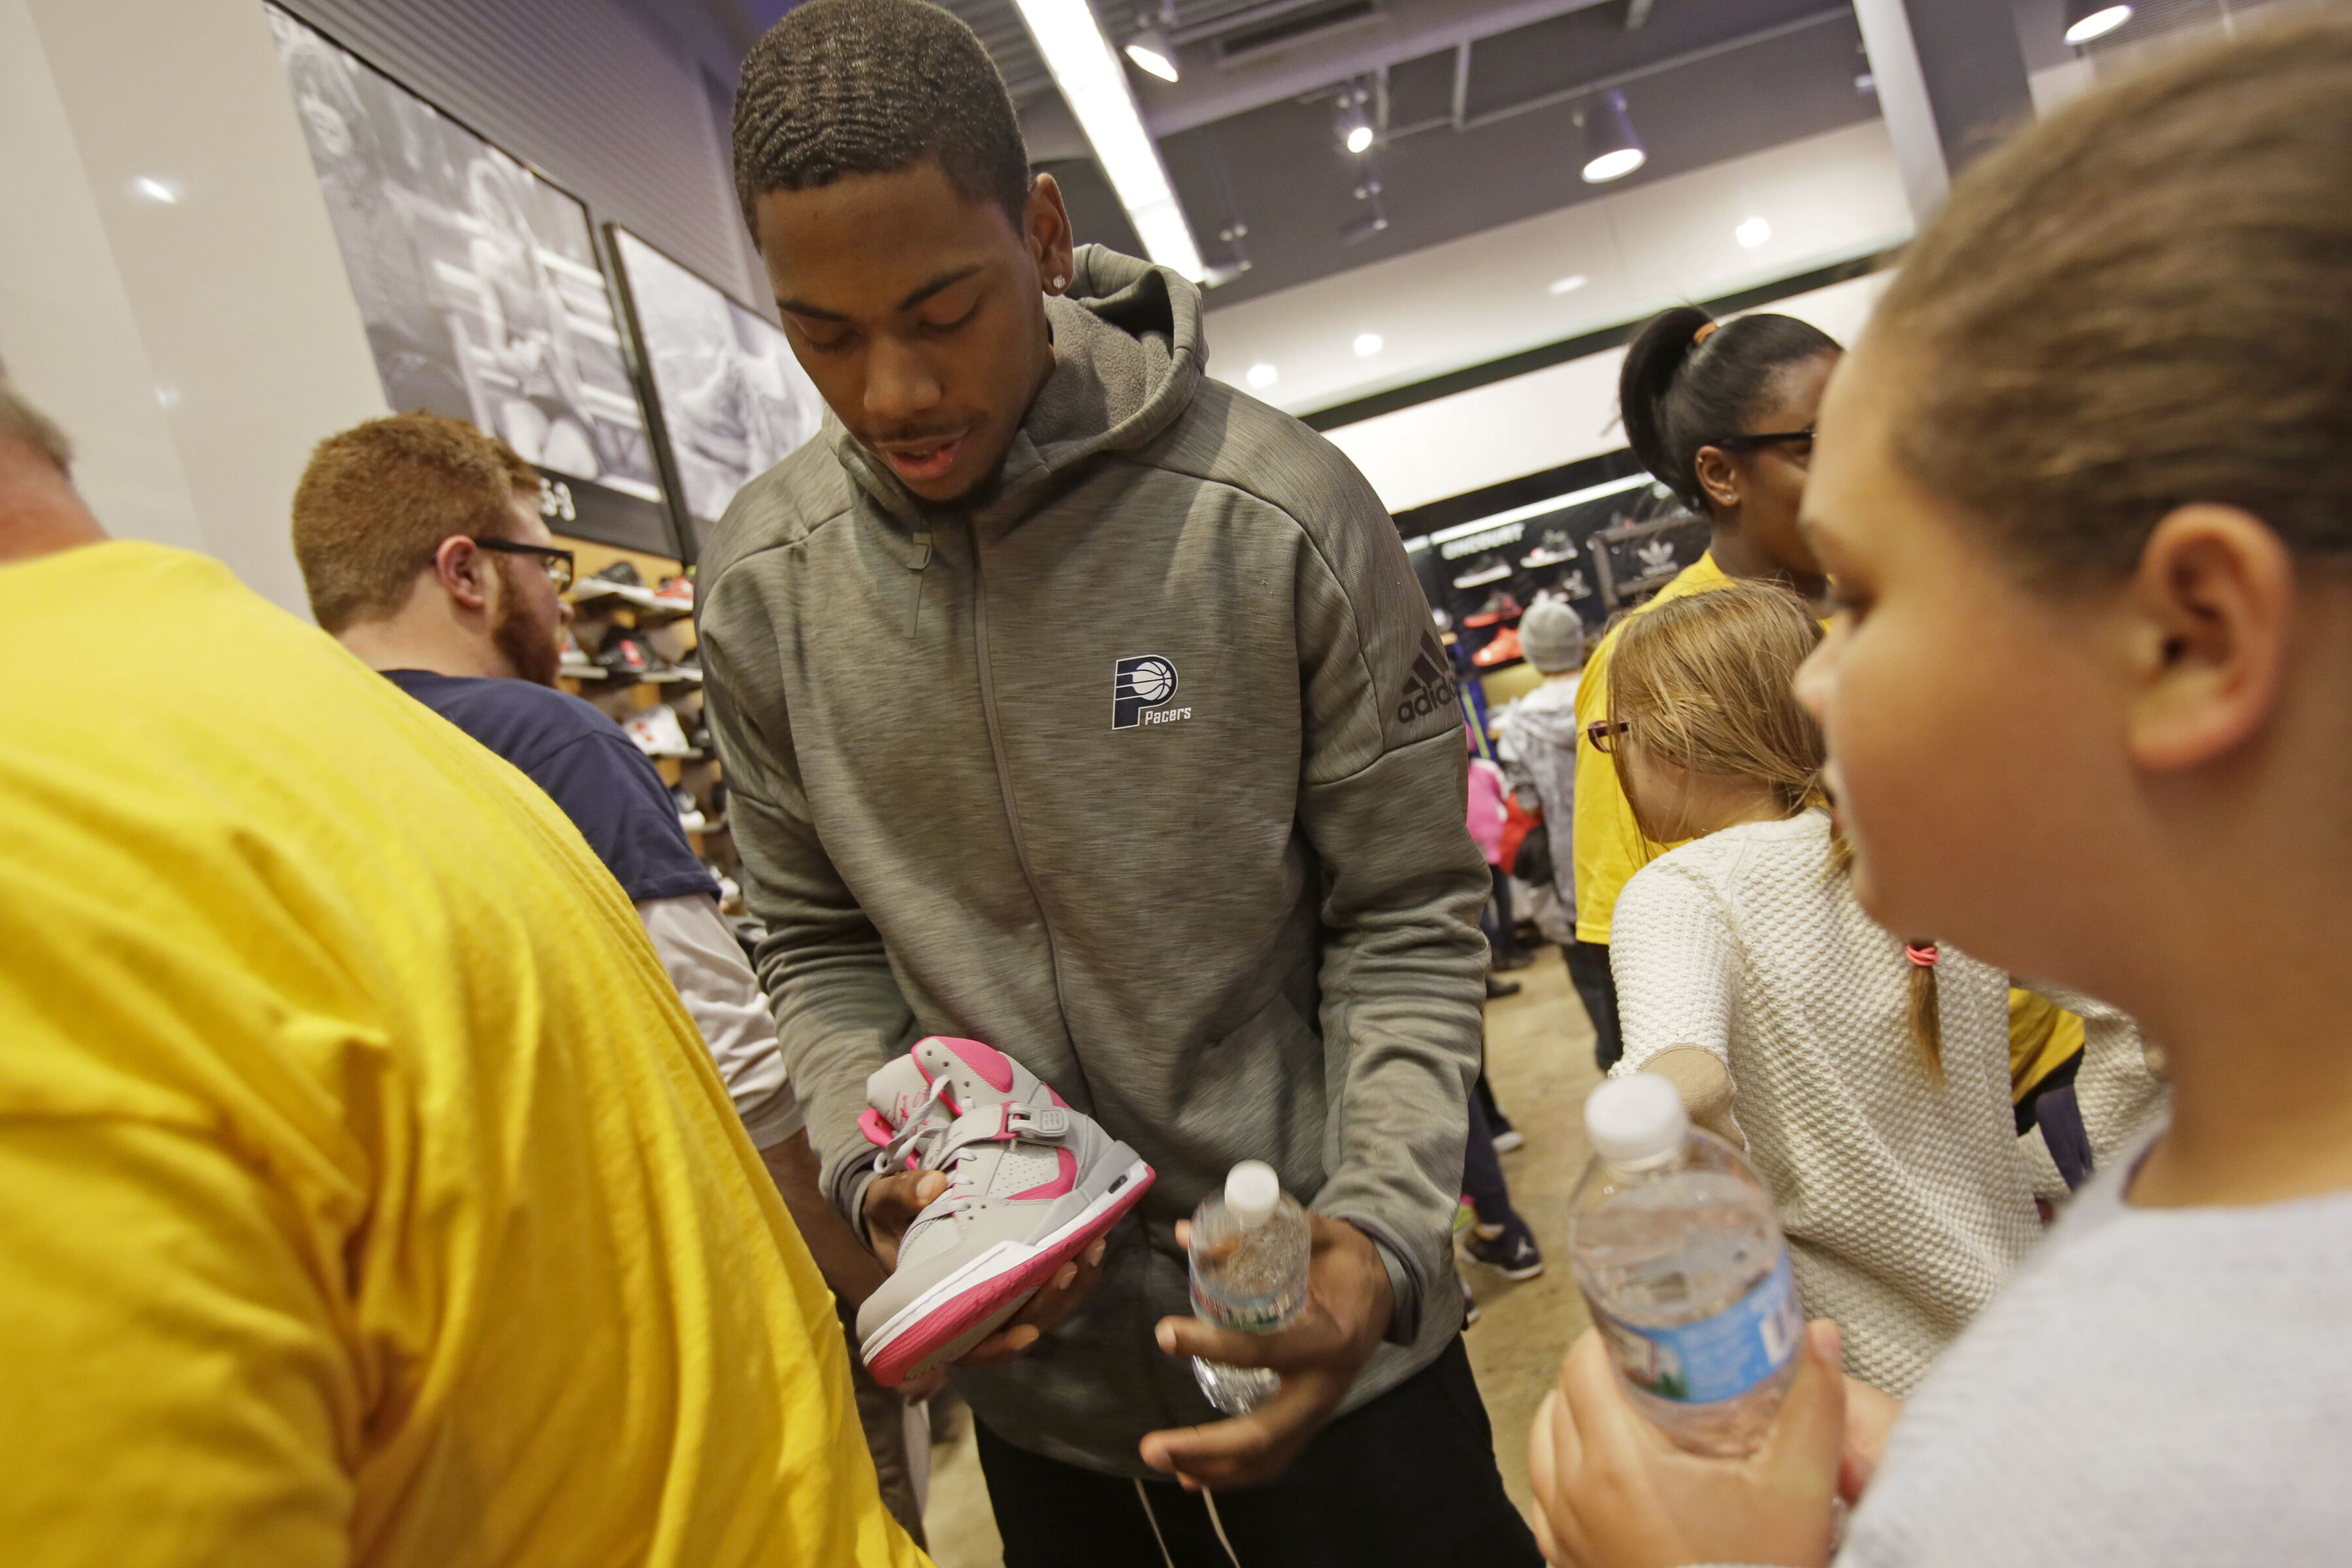 630361192-indiana-pacers-season-of-giving-event.jpg